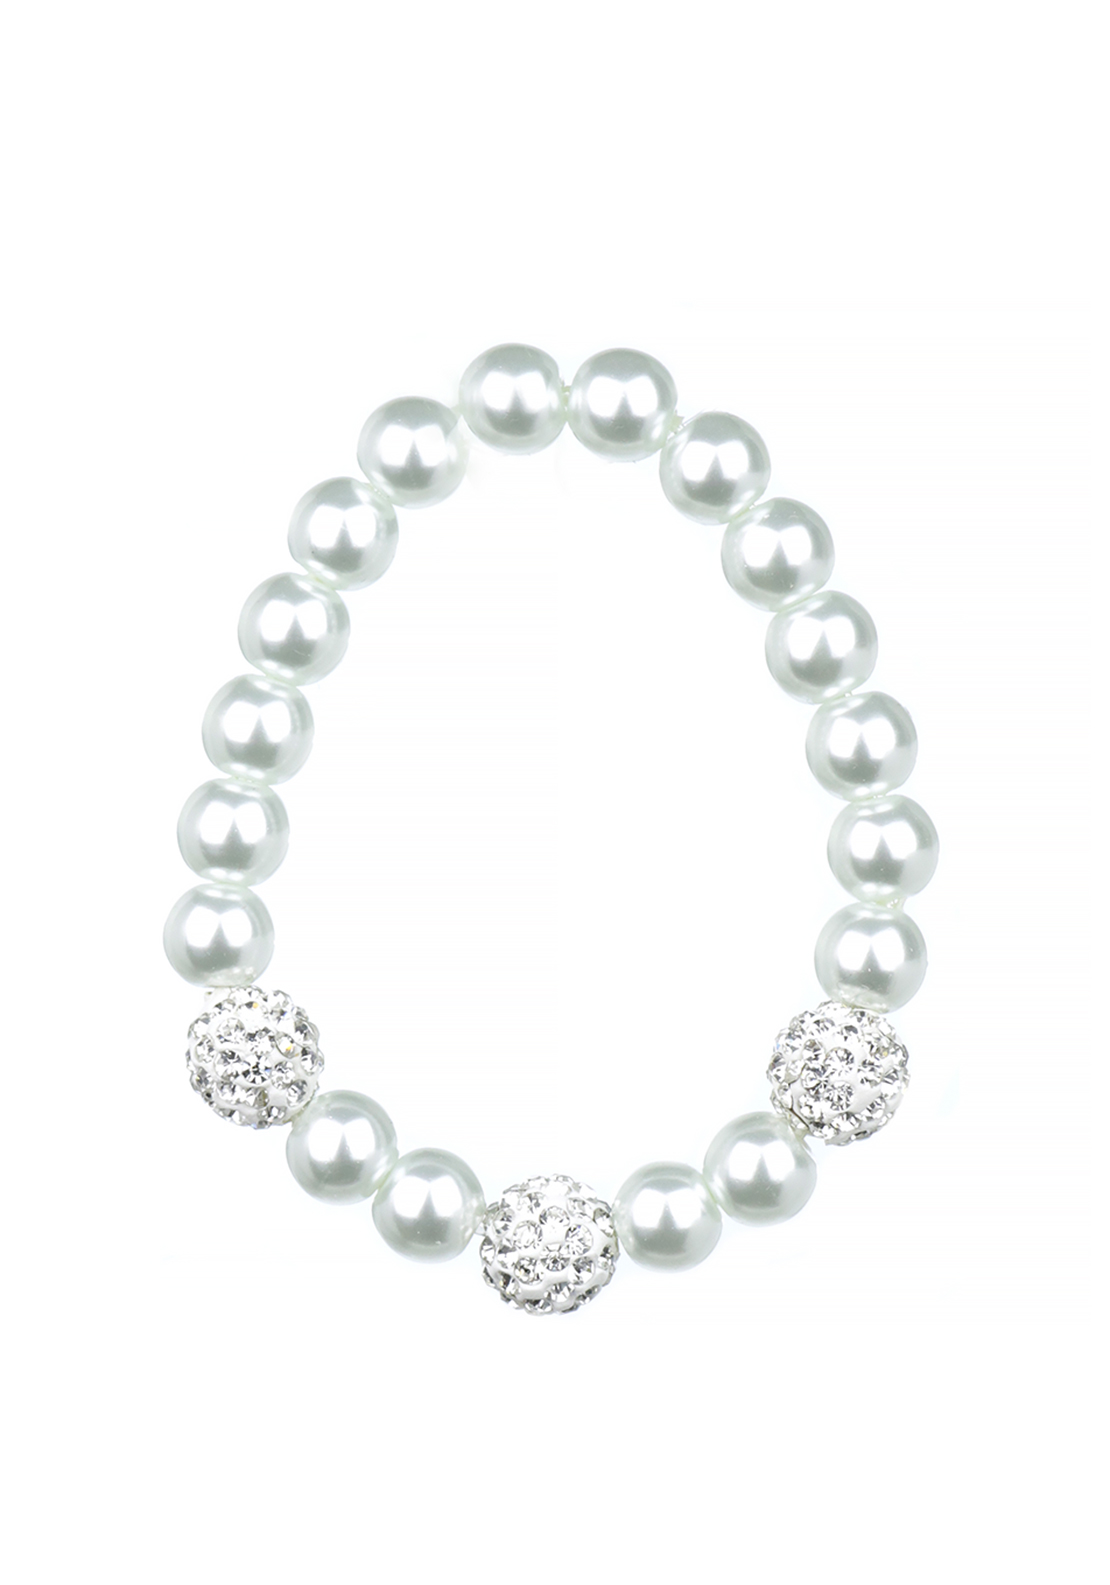 Absolute Jewellery Girls Pearl and Diamante Stretch Bracelet, White